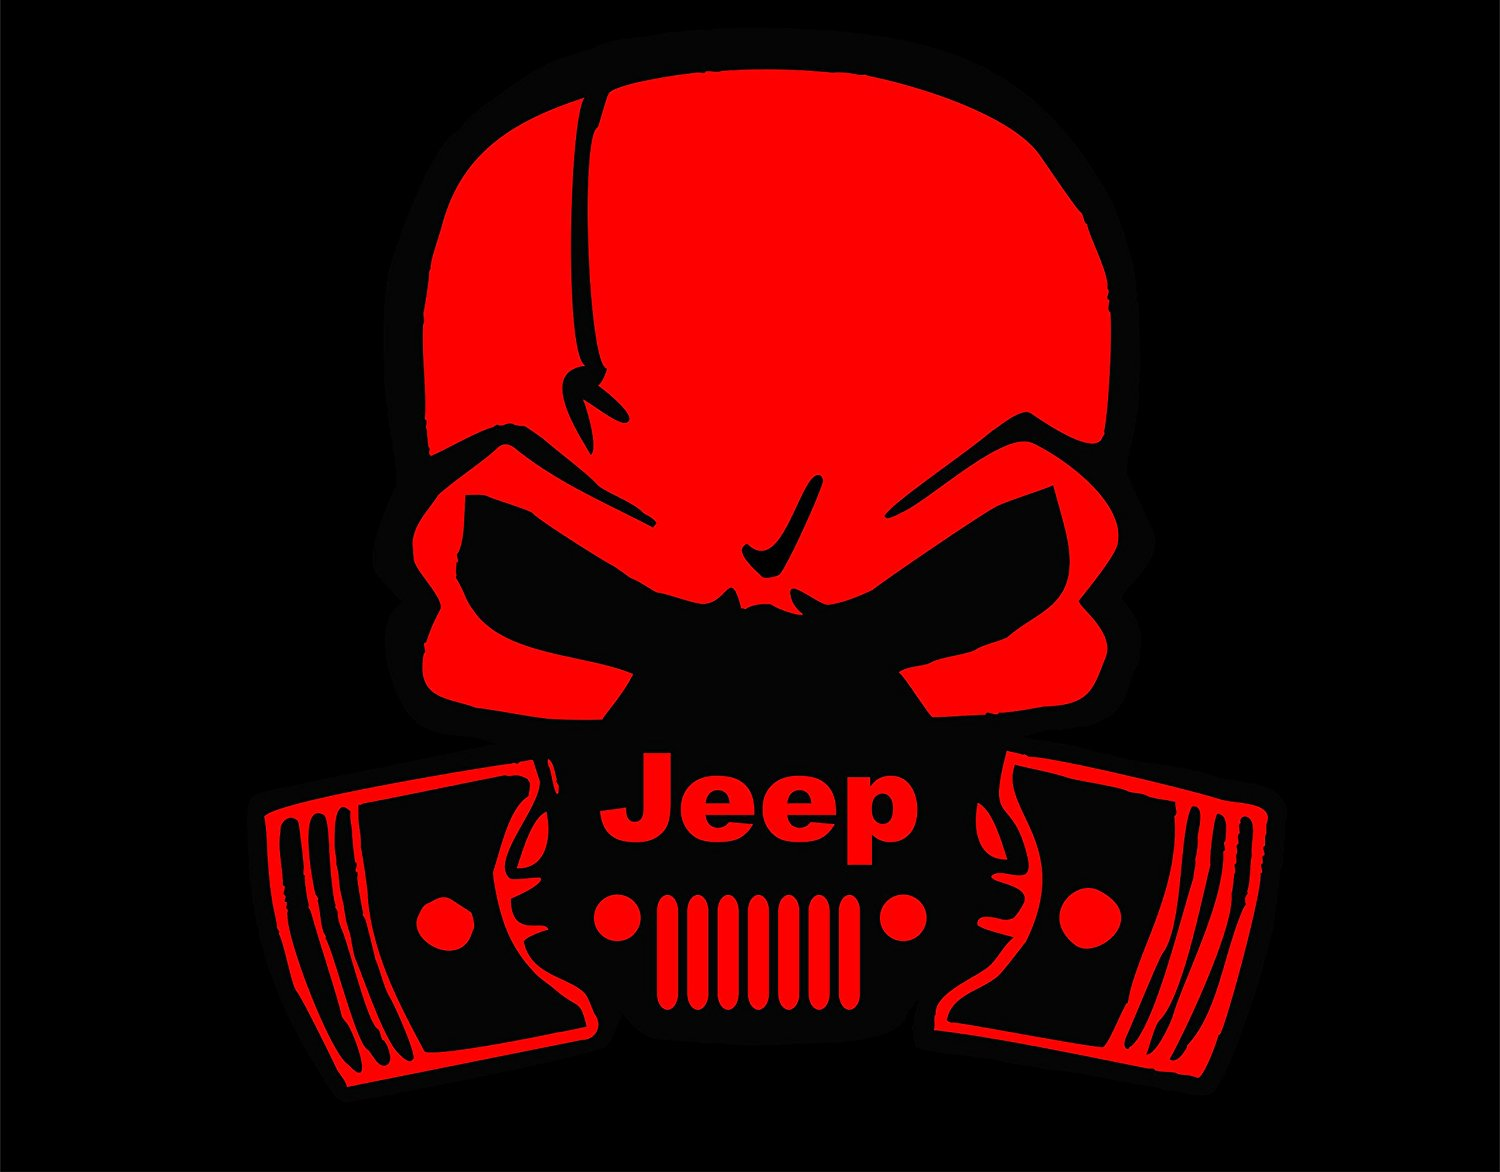 """Jeep Skull and Pistons Decal Vinyl Sticker / 6""""x5"""" / Red / Free Shipping! / Jeep Wave, Eat Sleep Jeep, Jeep Hand (Red)"""